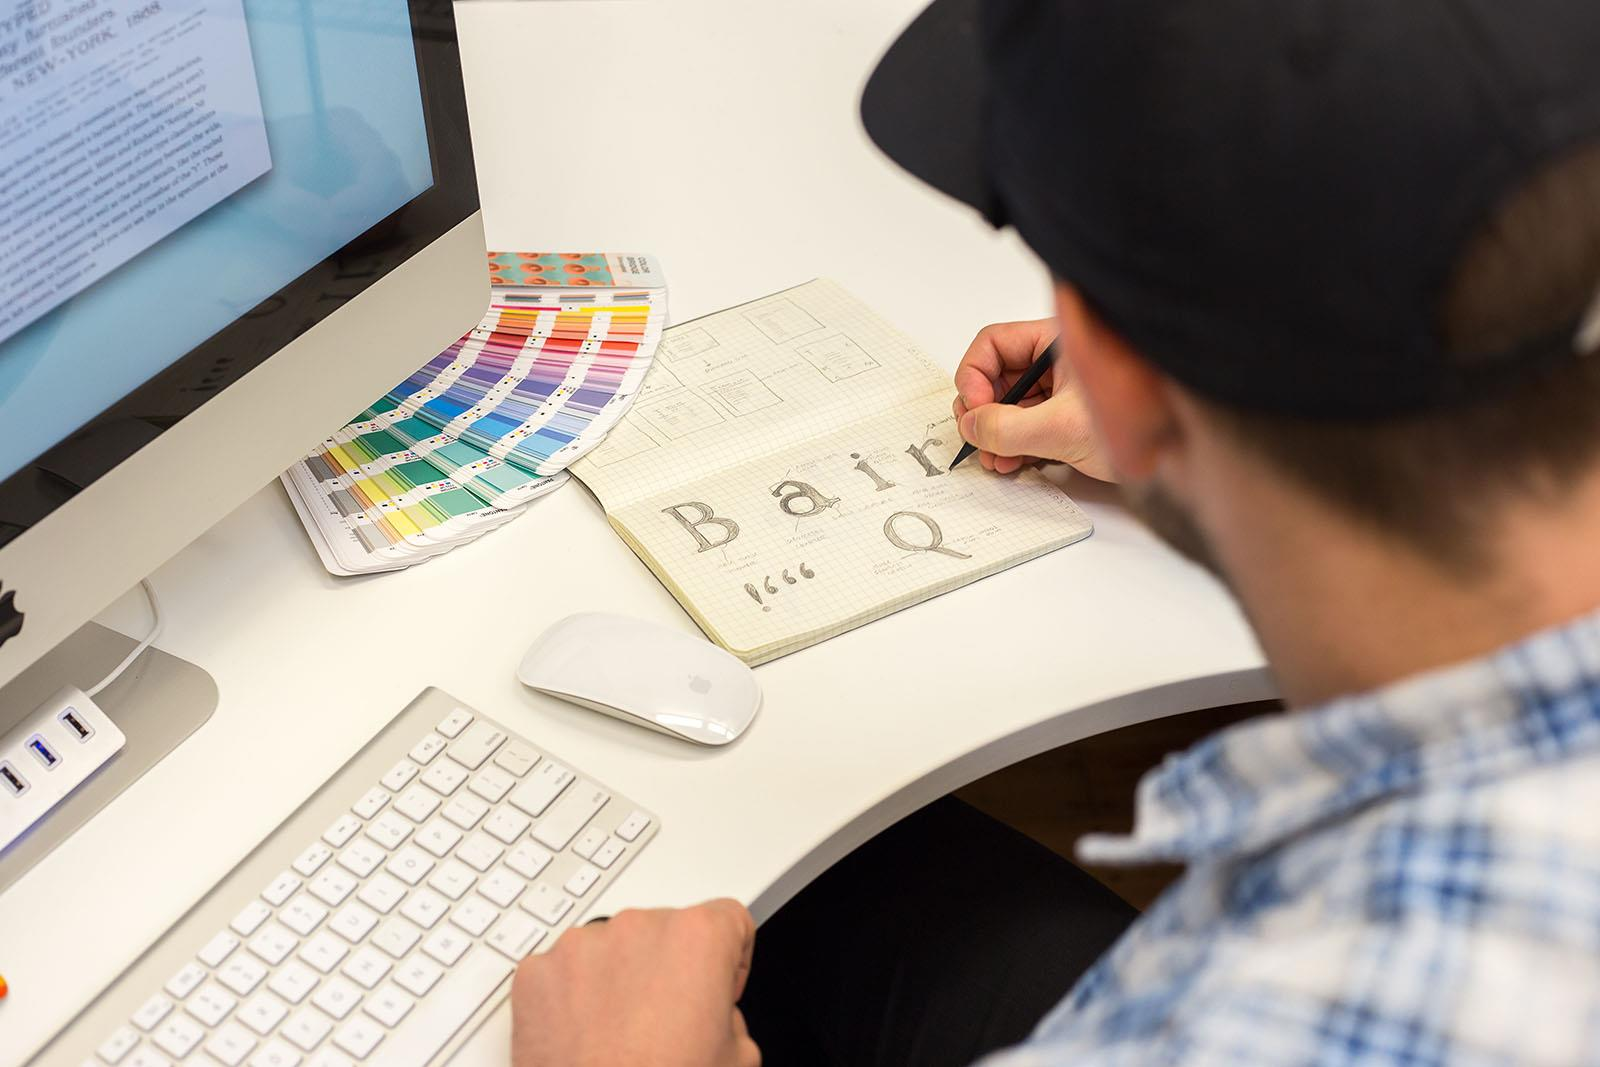 Design student drawing fonts